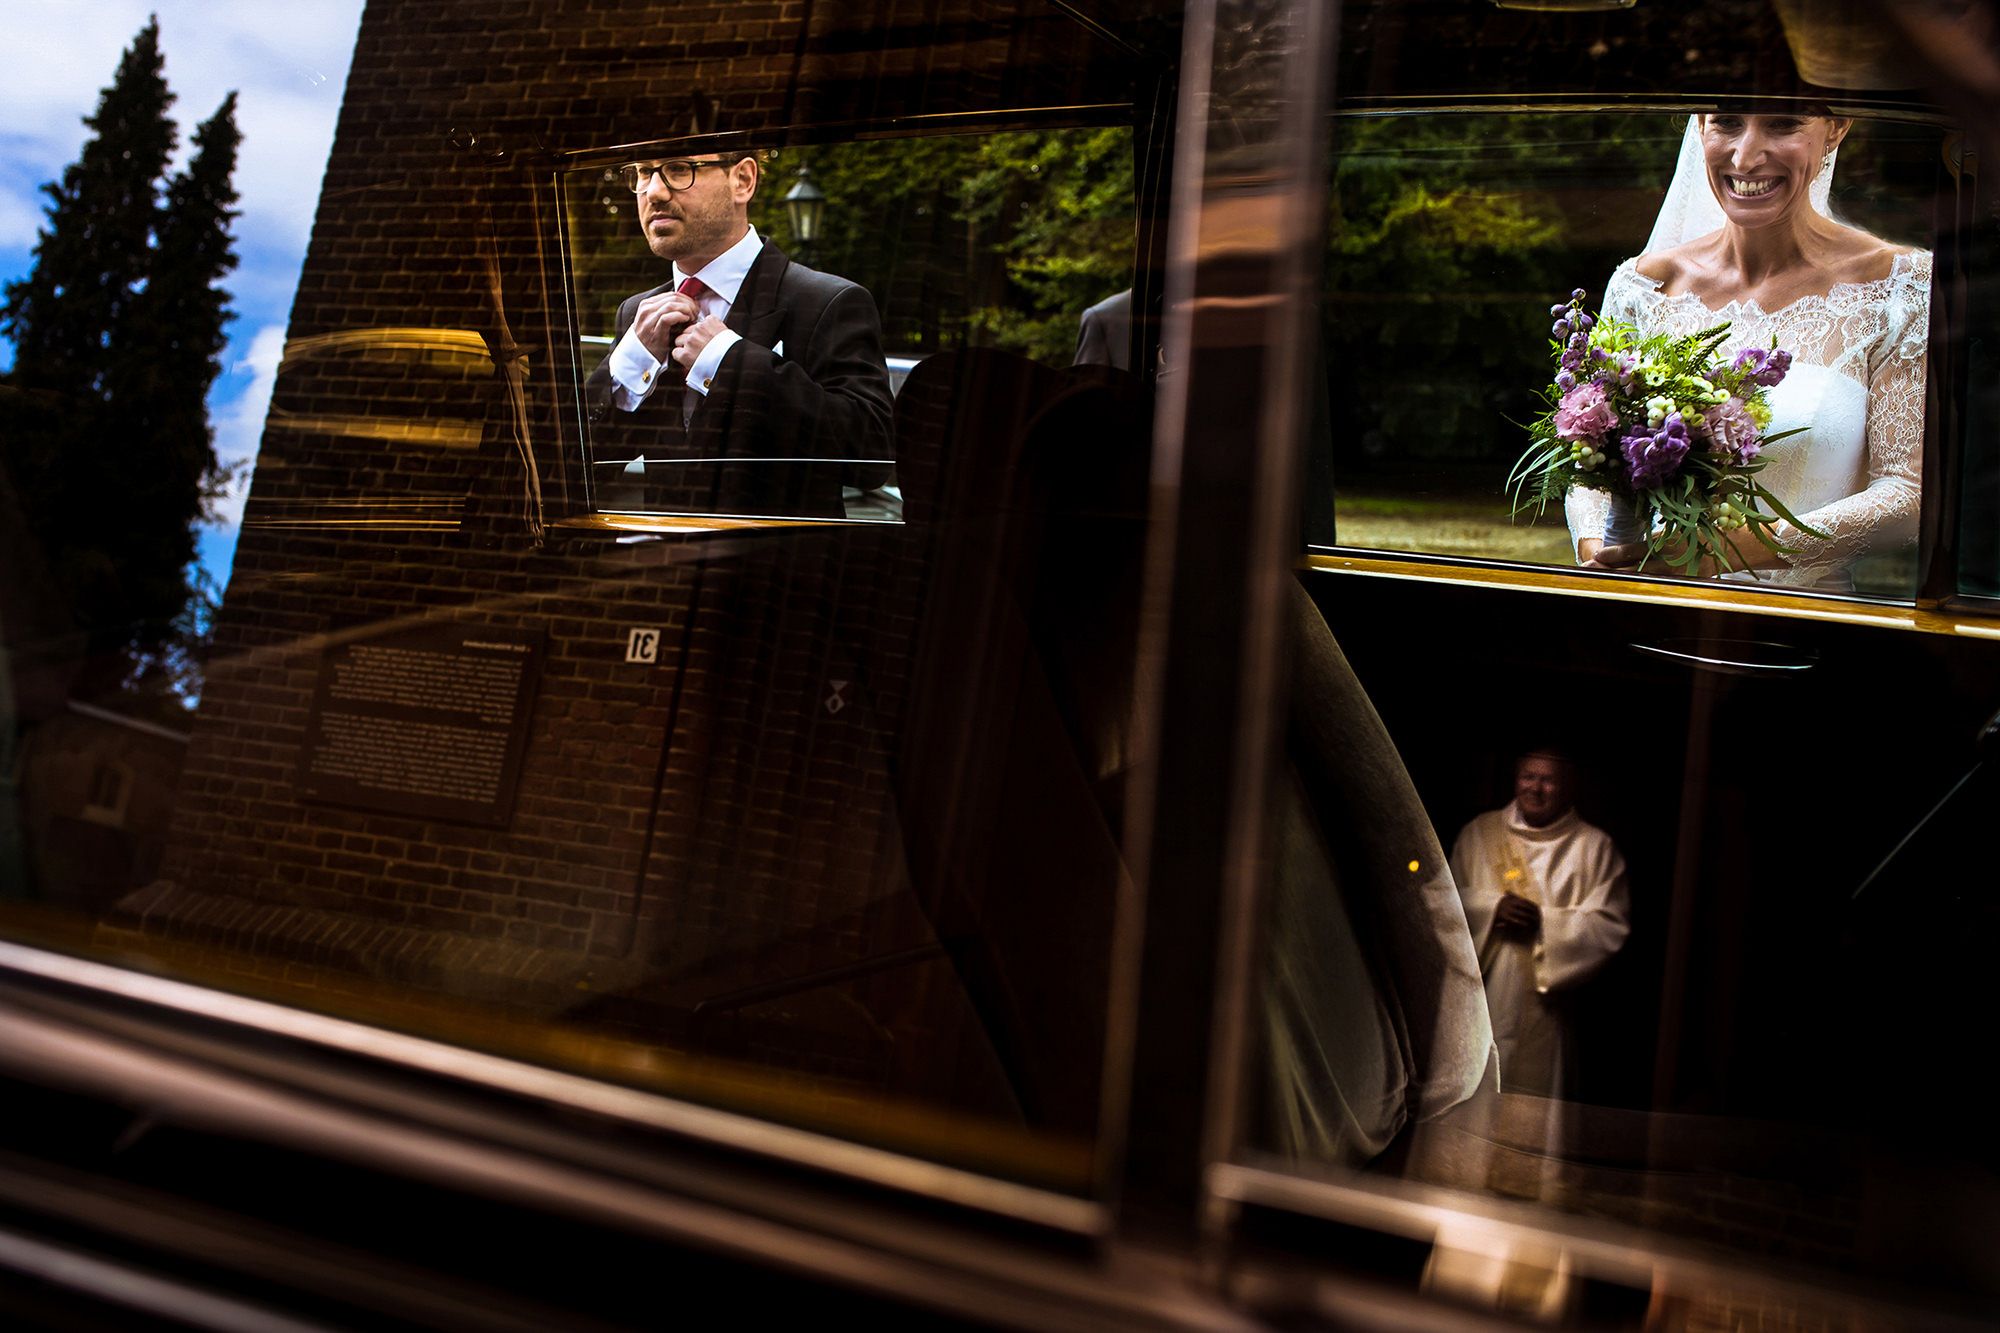 Creative composition reflections of bride and groom getting into limo photo by Fotobelle: Isabelle Hattink